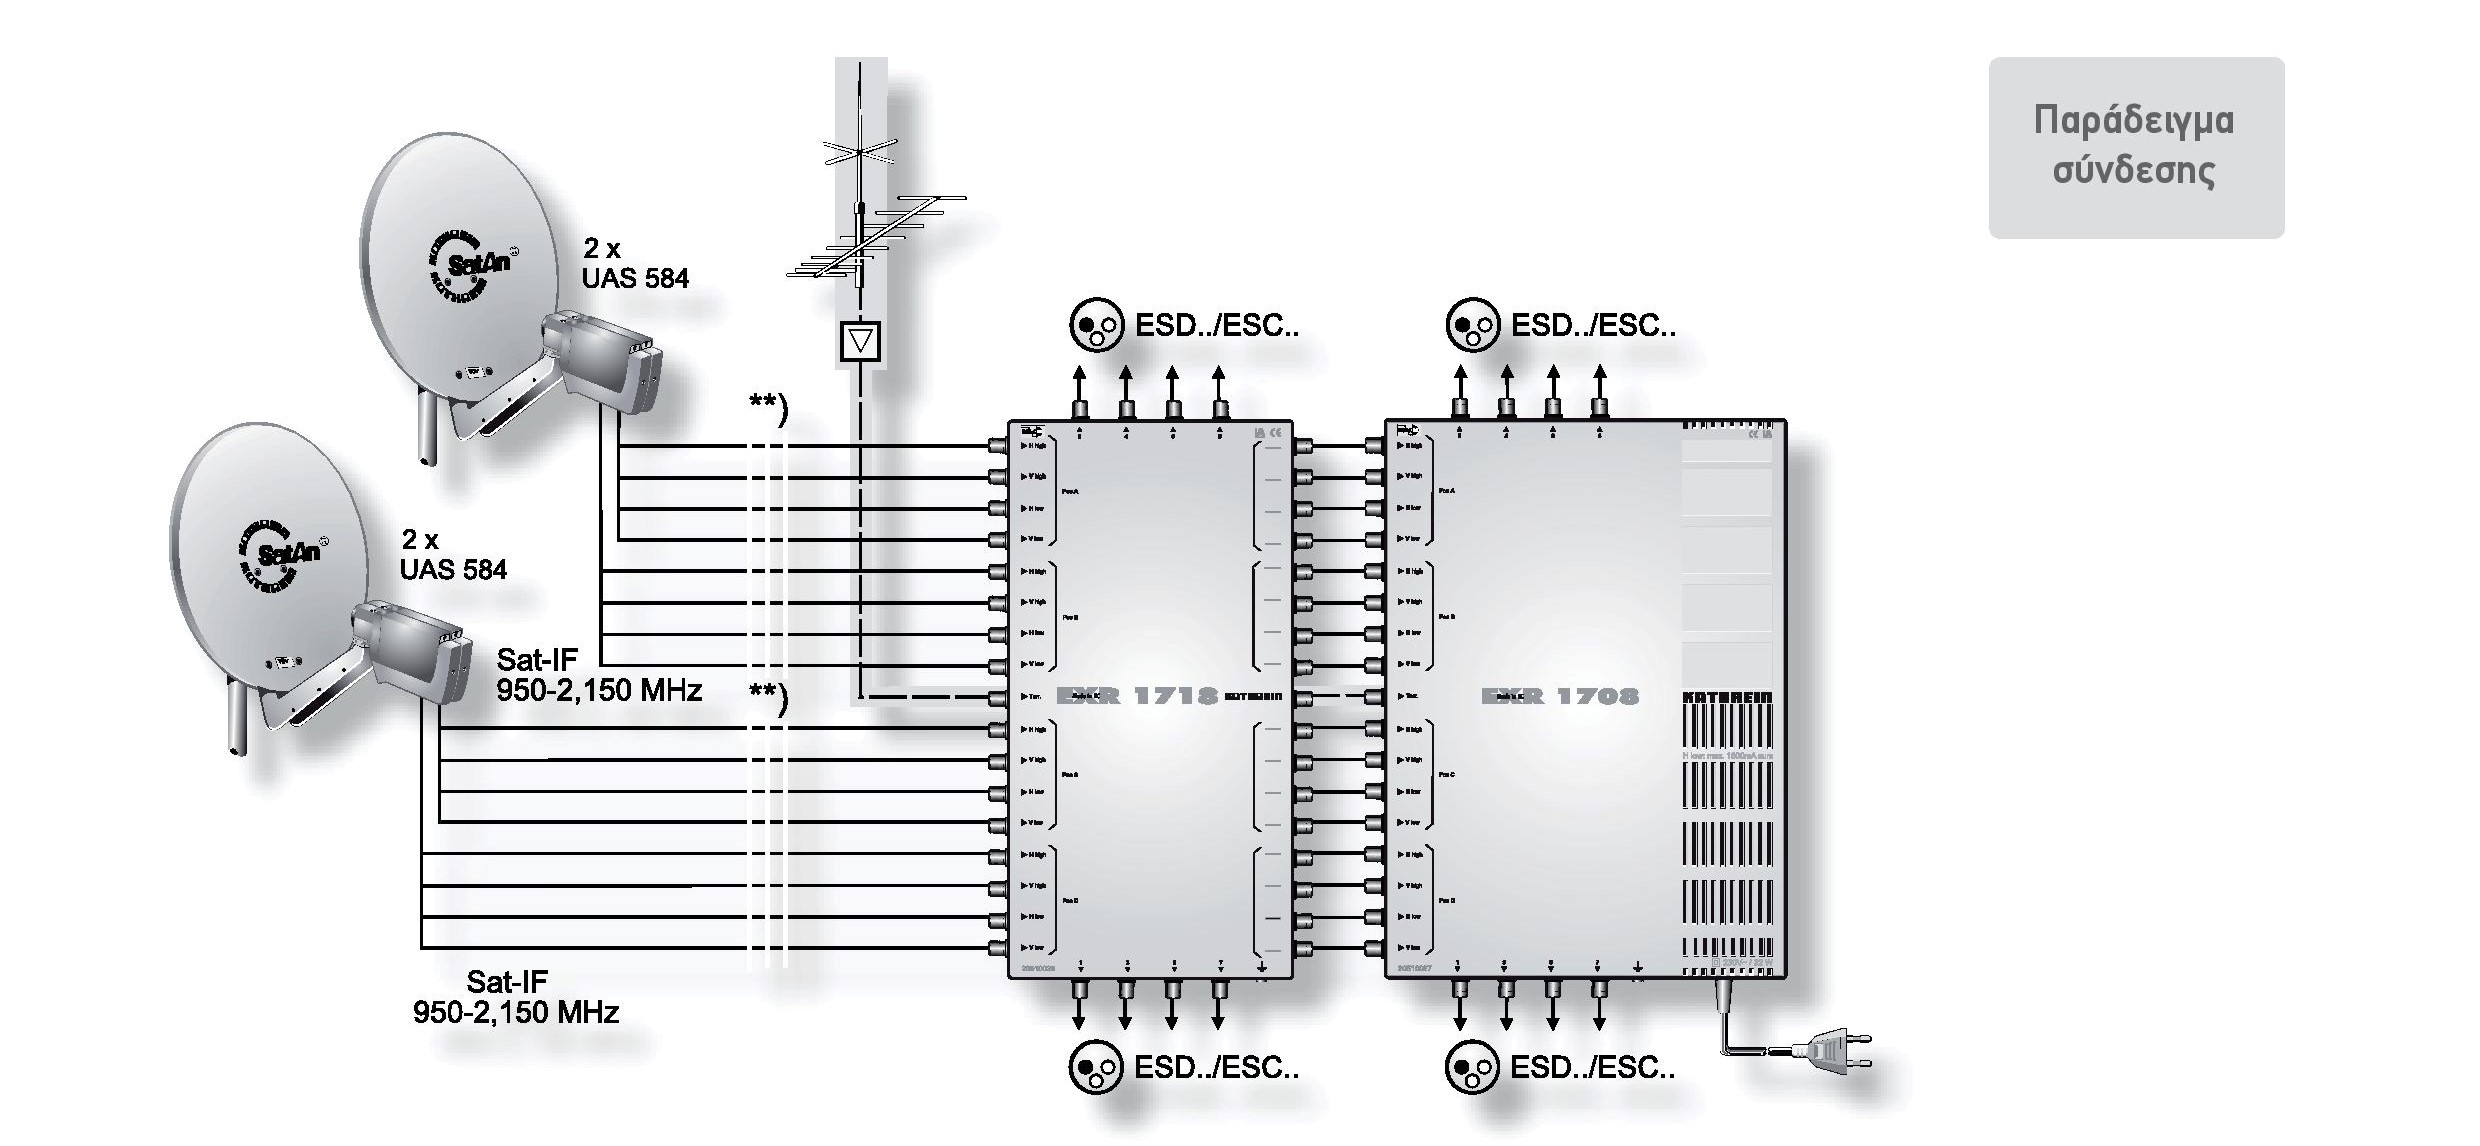 Offset Parabolic Antennas Lnb Kathrein Dish Network Wiring Diagram Through Programme Selection On The Receiver As Is Done In Single Feed System It Possible To Extend More Than Four Connections